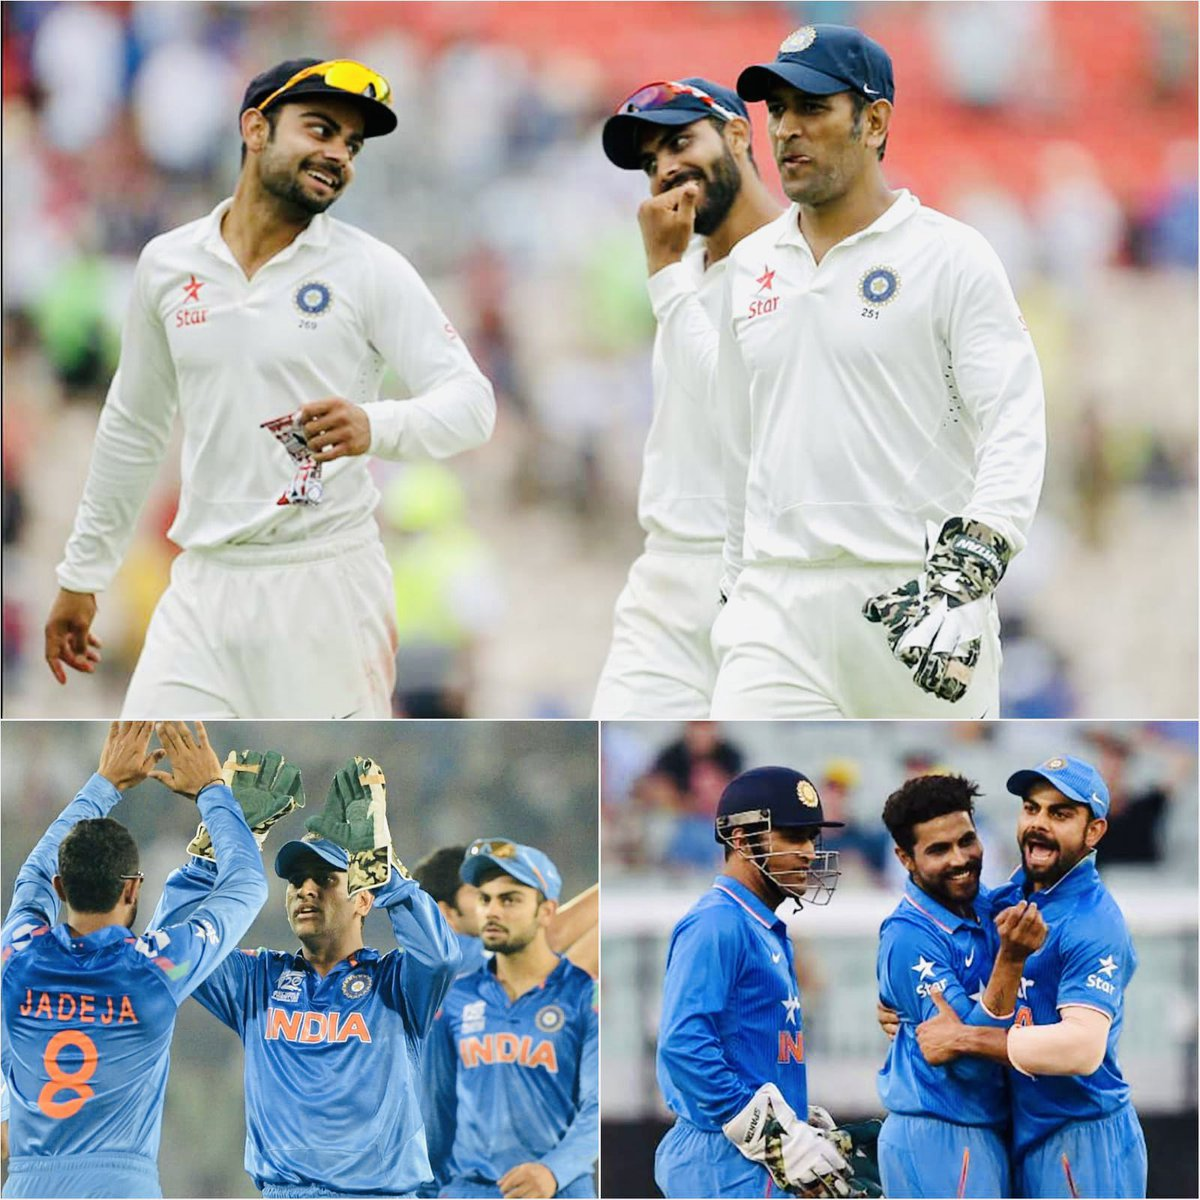 It's a great honour to join Mahi Bhai and Virat as the only others to have played 50 games across all 3 formats for 🇮🇳  A big thank you to the BCCI, my team mates, the brilliant support staff for showing faith in me and for always backing me.Onwards and upwards. Jai Hind 🙏